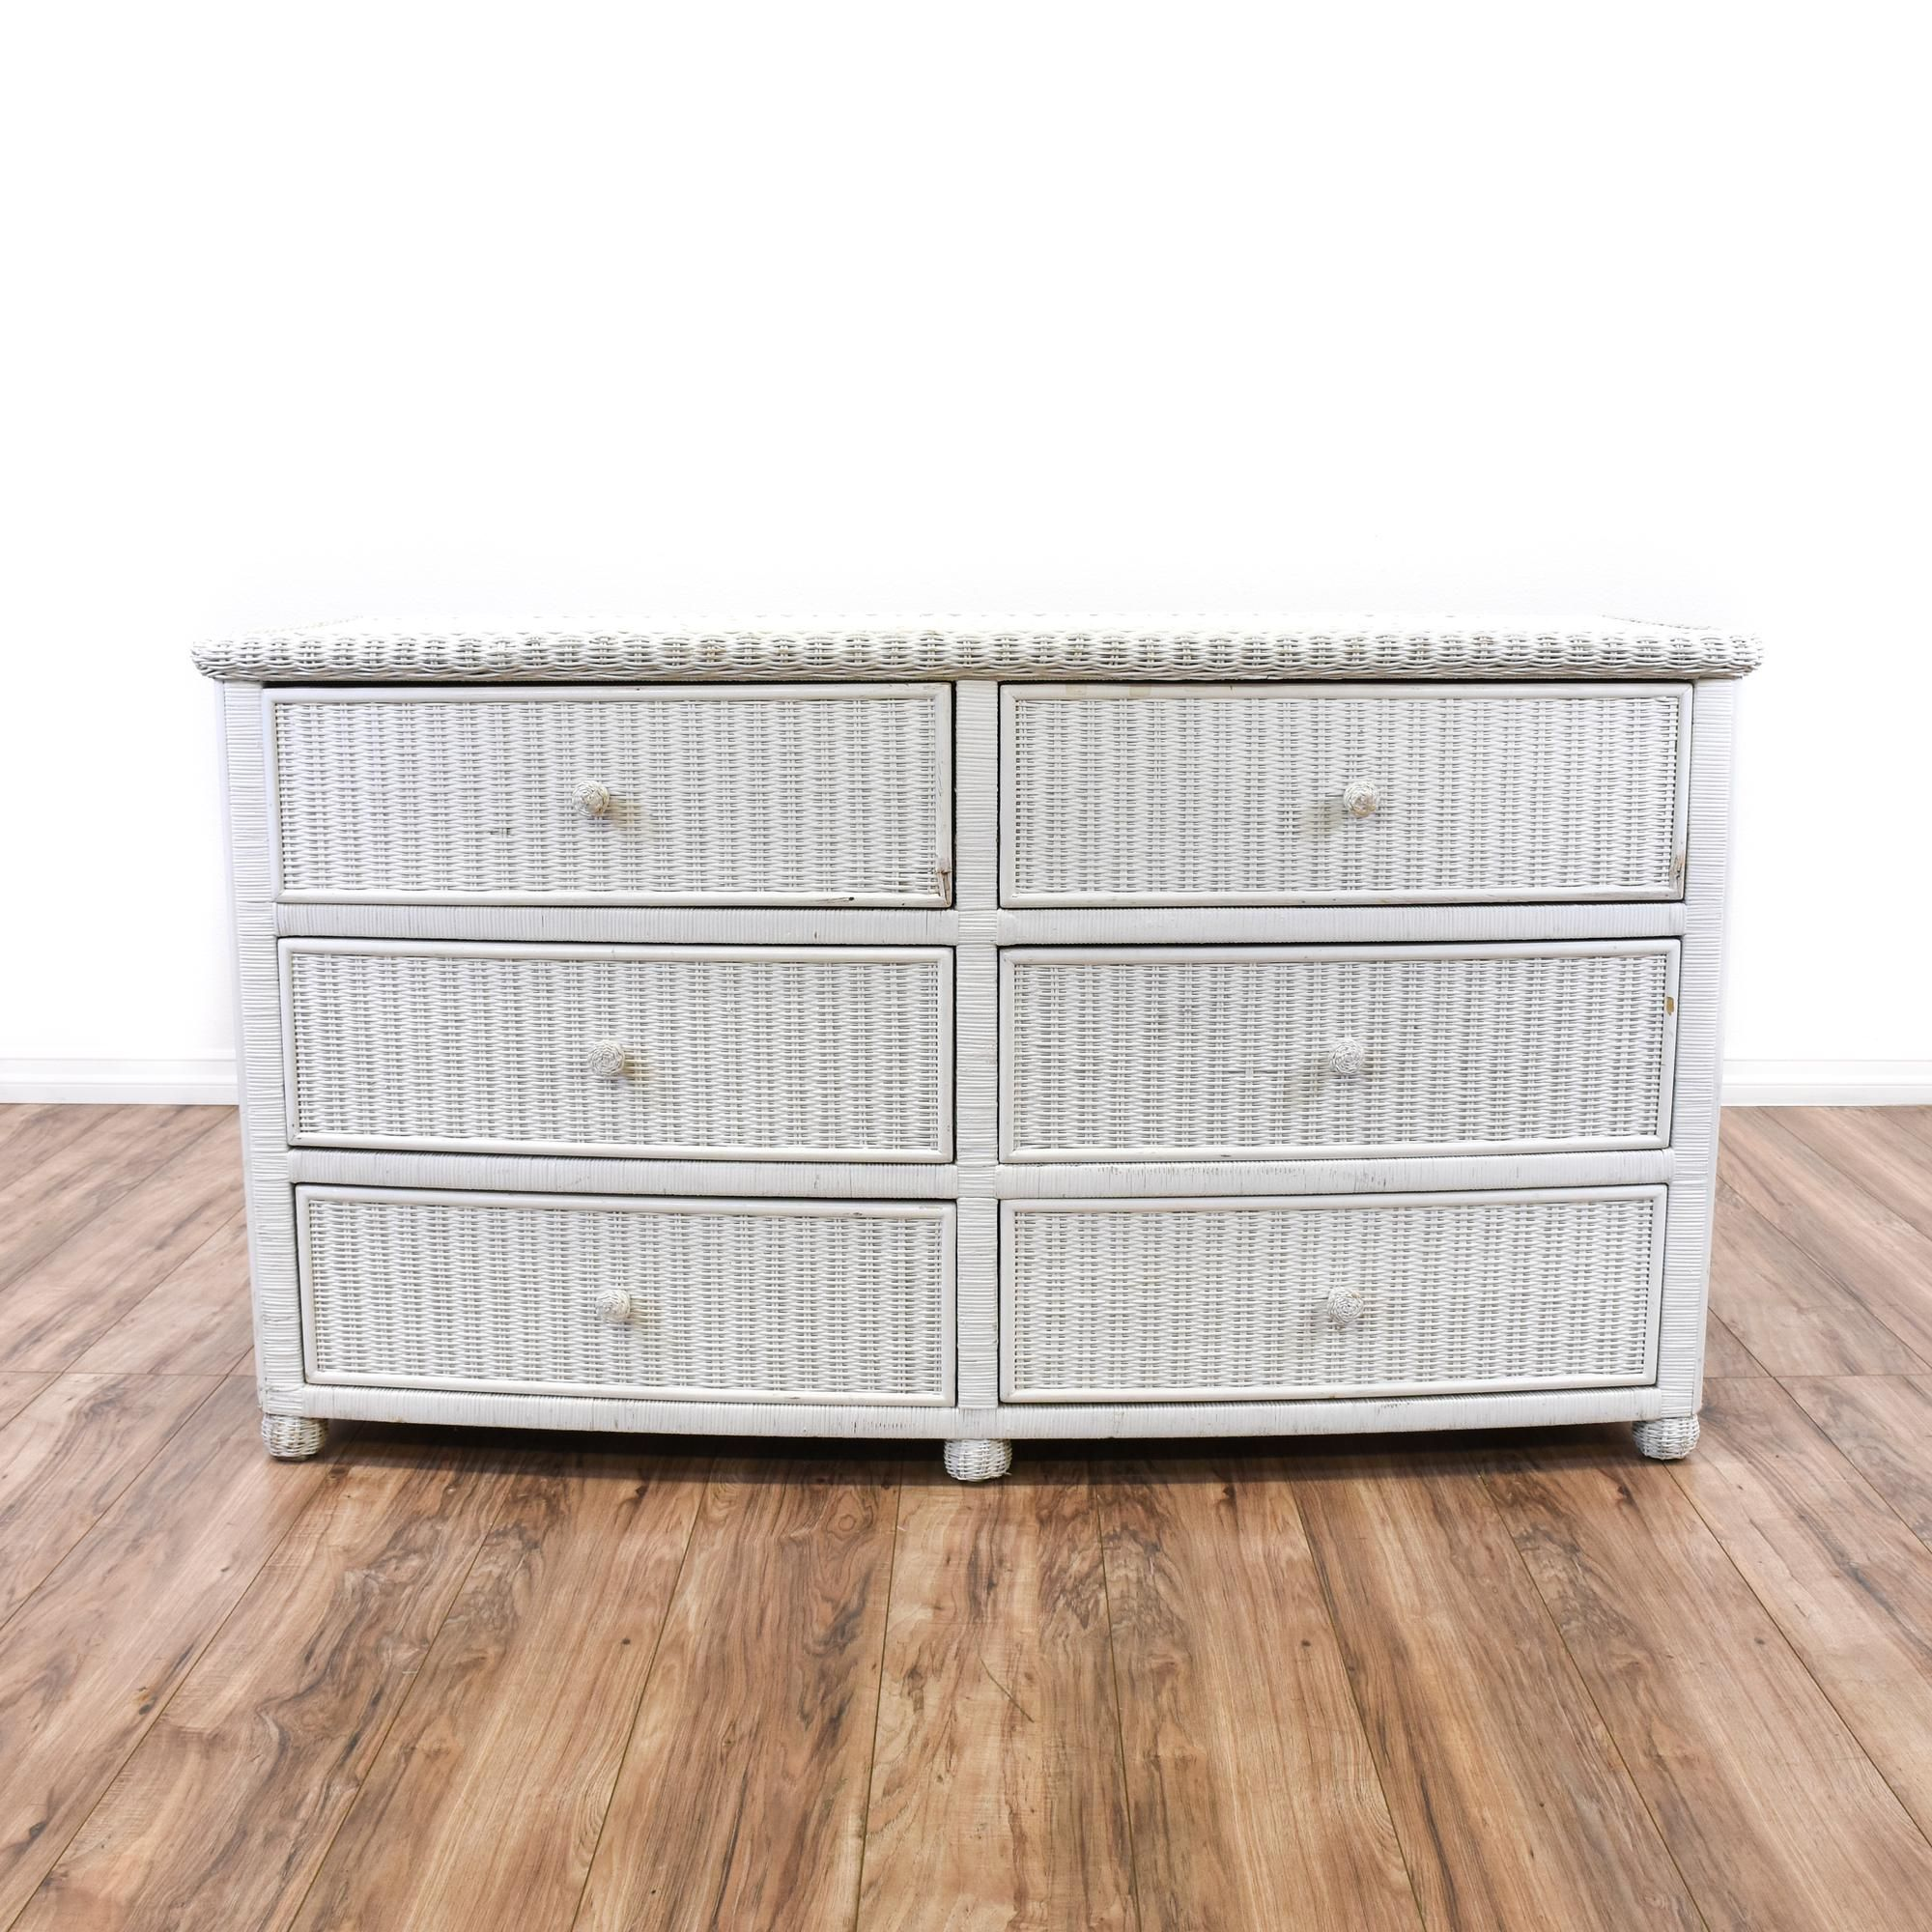 This Long Dresser Is Featured In A Woven Wicker With A Fresh White Paint Finish This Beach Chic Dresser Has 6 Spacious Vintage Furniture Wicker Dresser Wicker [ 2000 x 2000 Pixel ]